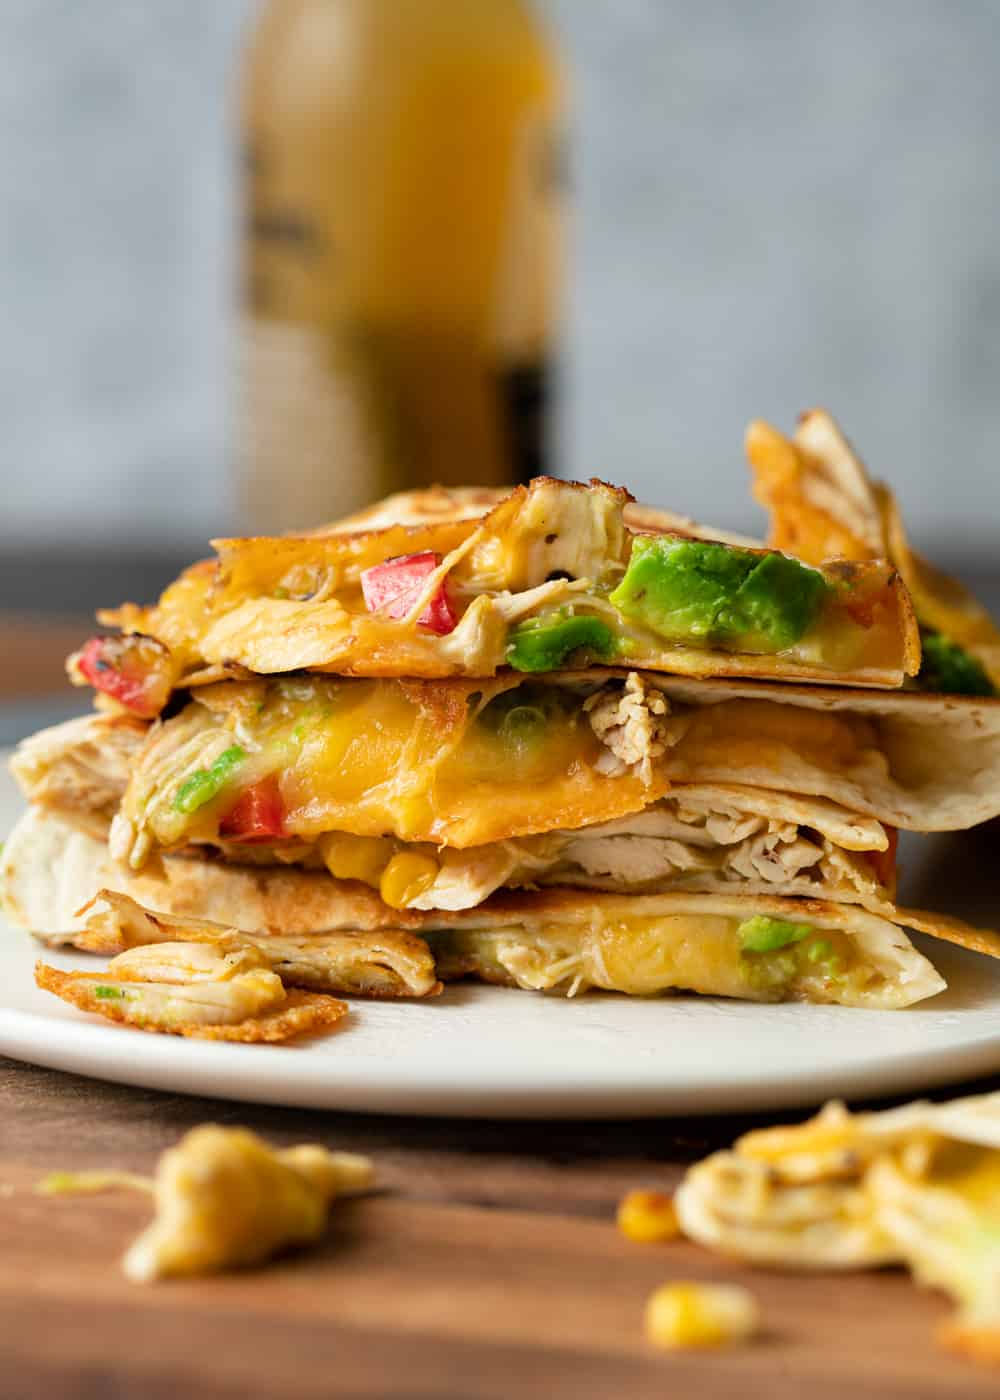 chicken quesadillas on a plate with beer in the background